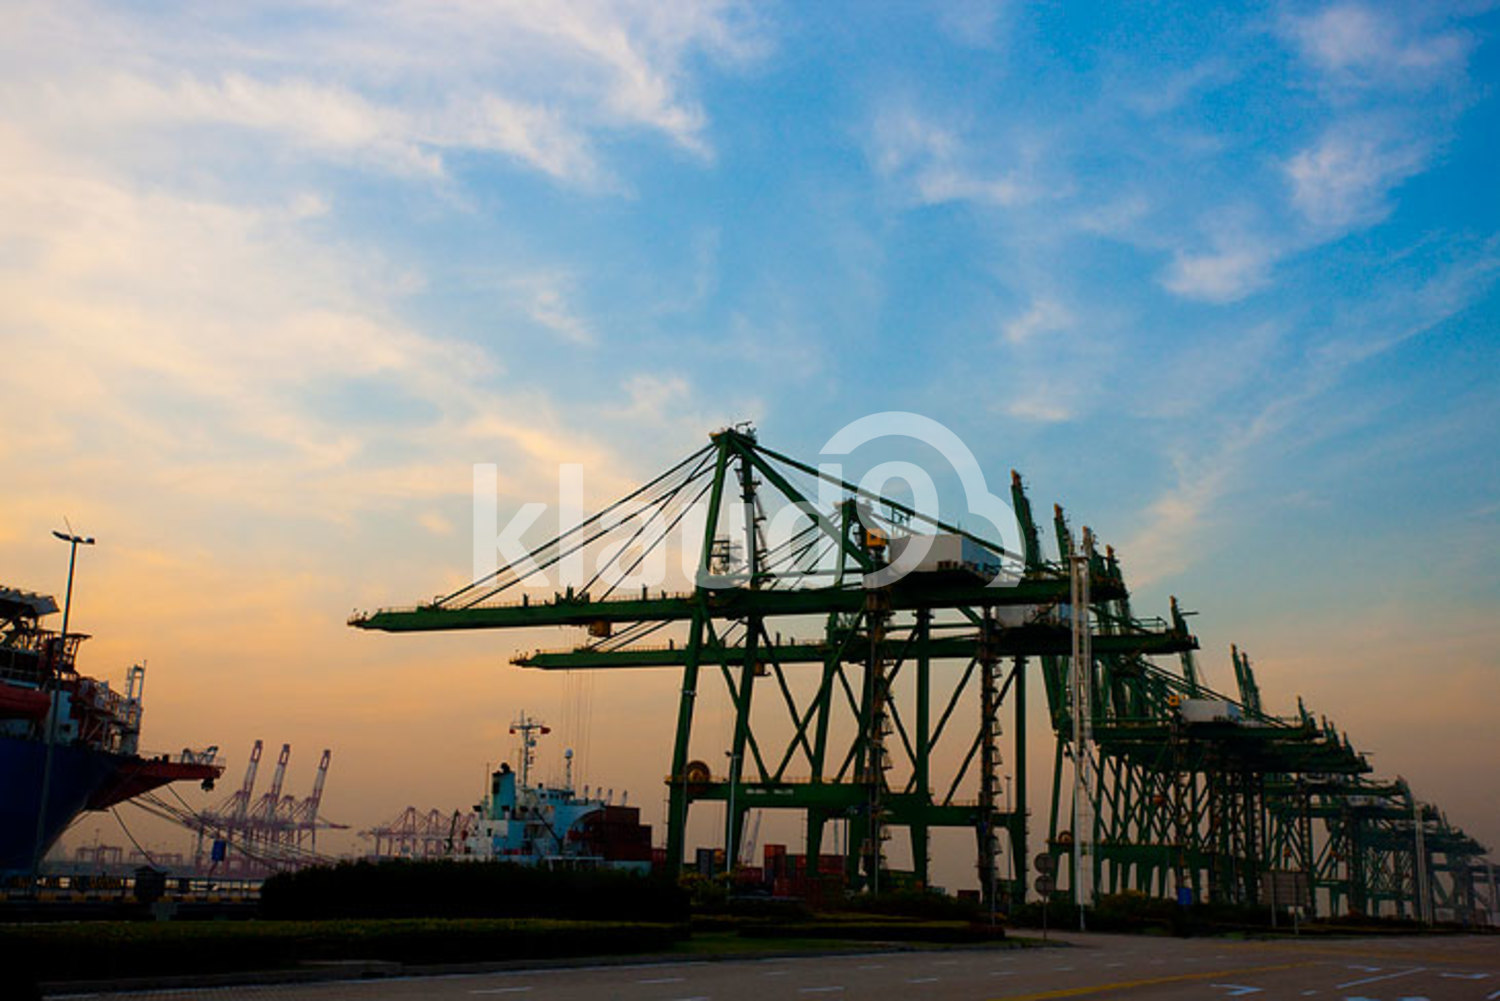 View of cranes and cargo ships at dusk